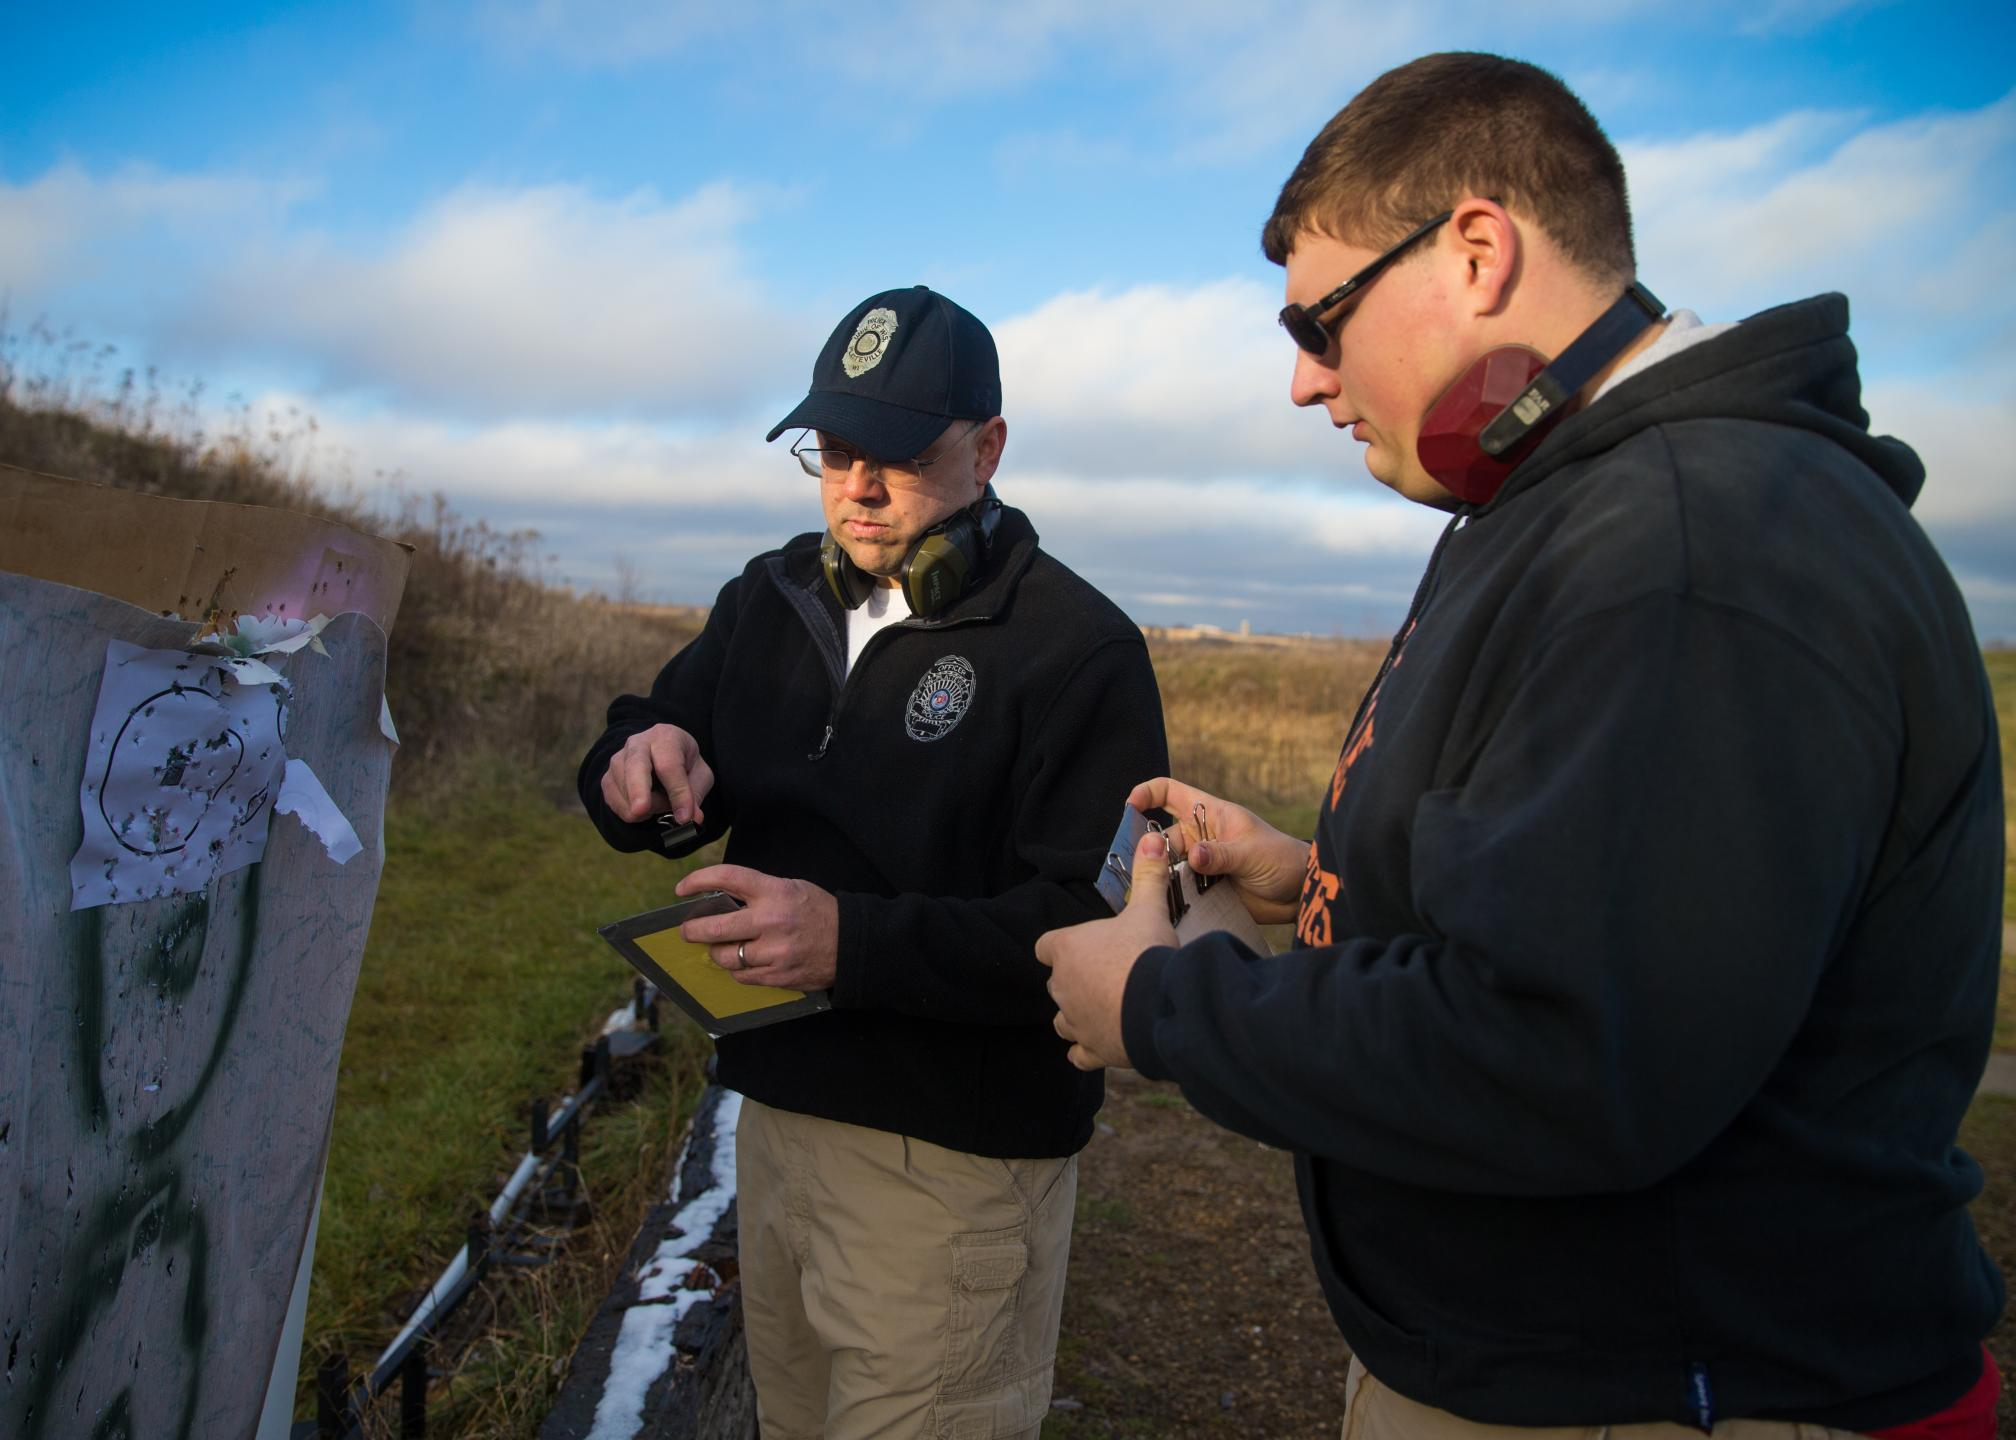 uw platteville student designs bulletproof panel for backpacks university police help test the panels at a local shooting range